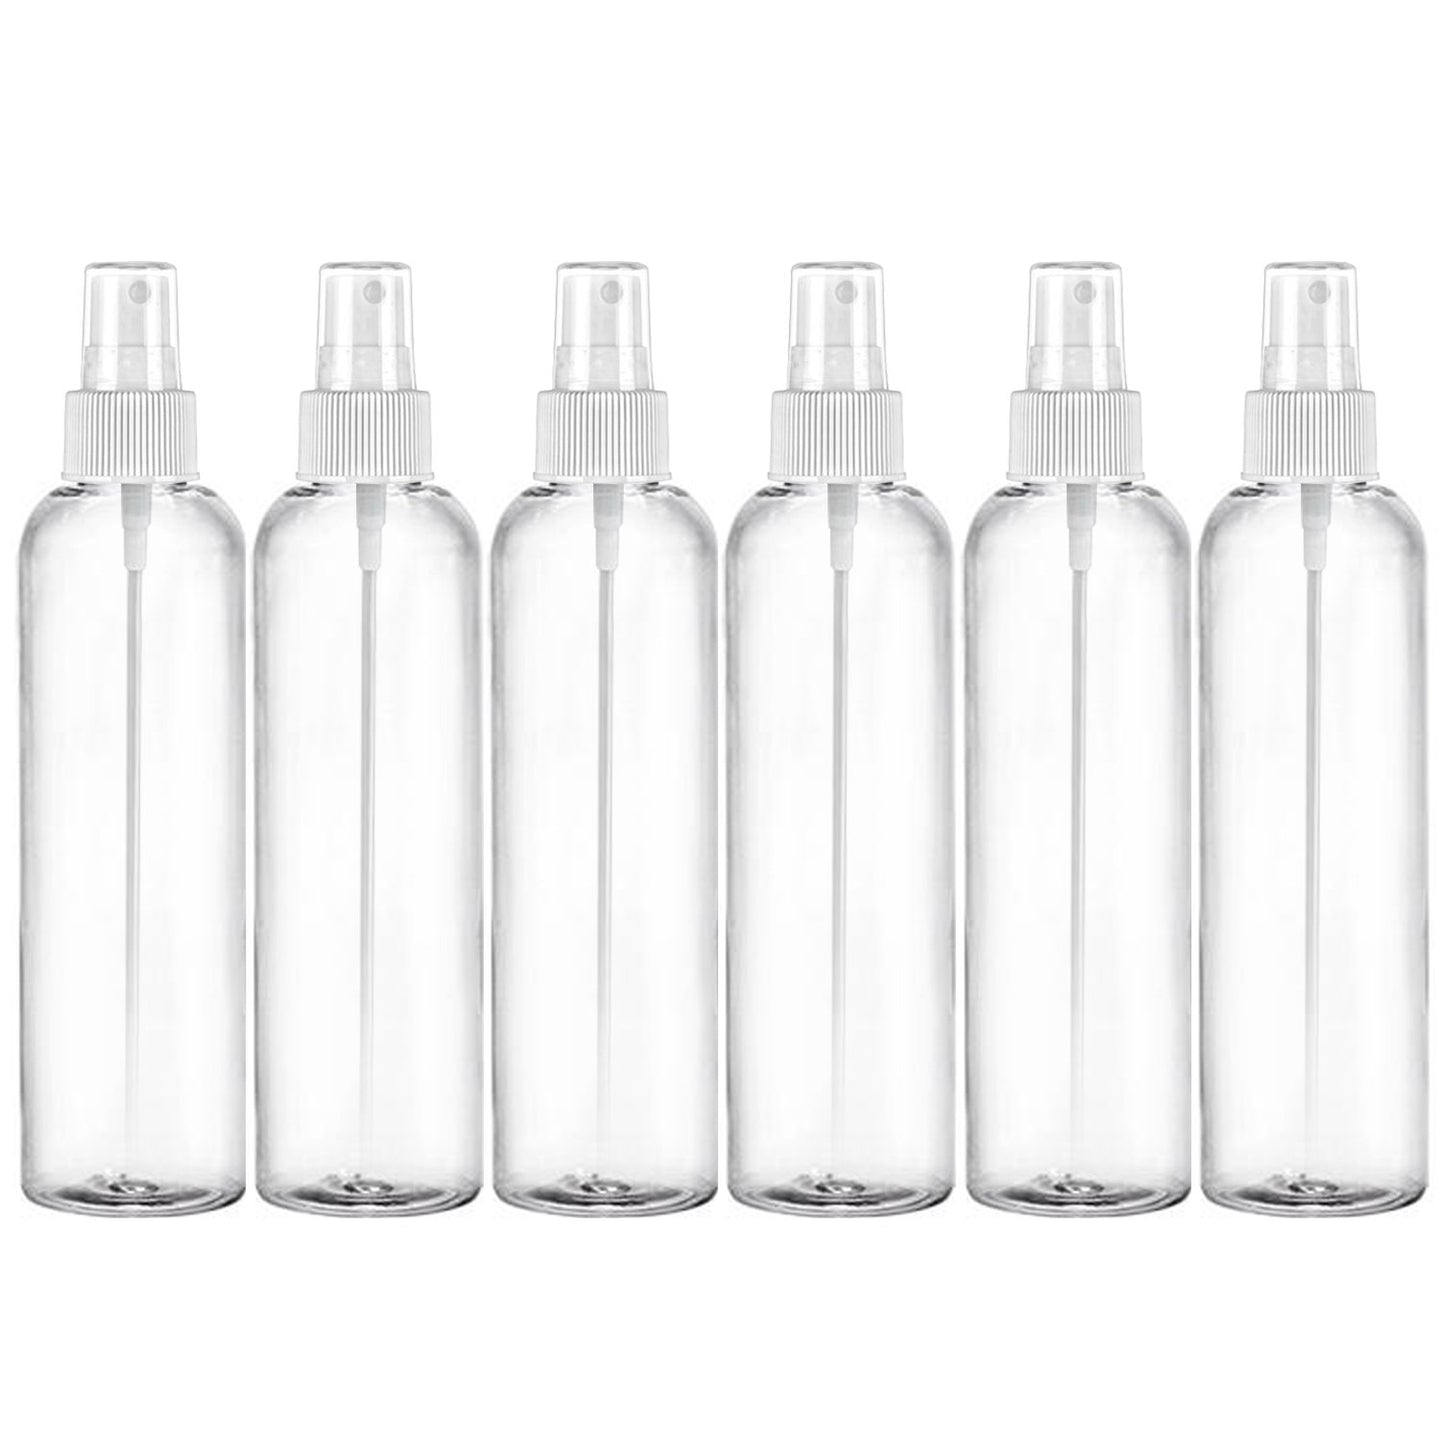 MoYo Natural Labs 8 oz Spray Bottle, Fine Mist Empty Travel Containers, BPA Free PET Plastic for Essential Oils and Liquids/Cosmetics (6 Pack, Clear)